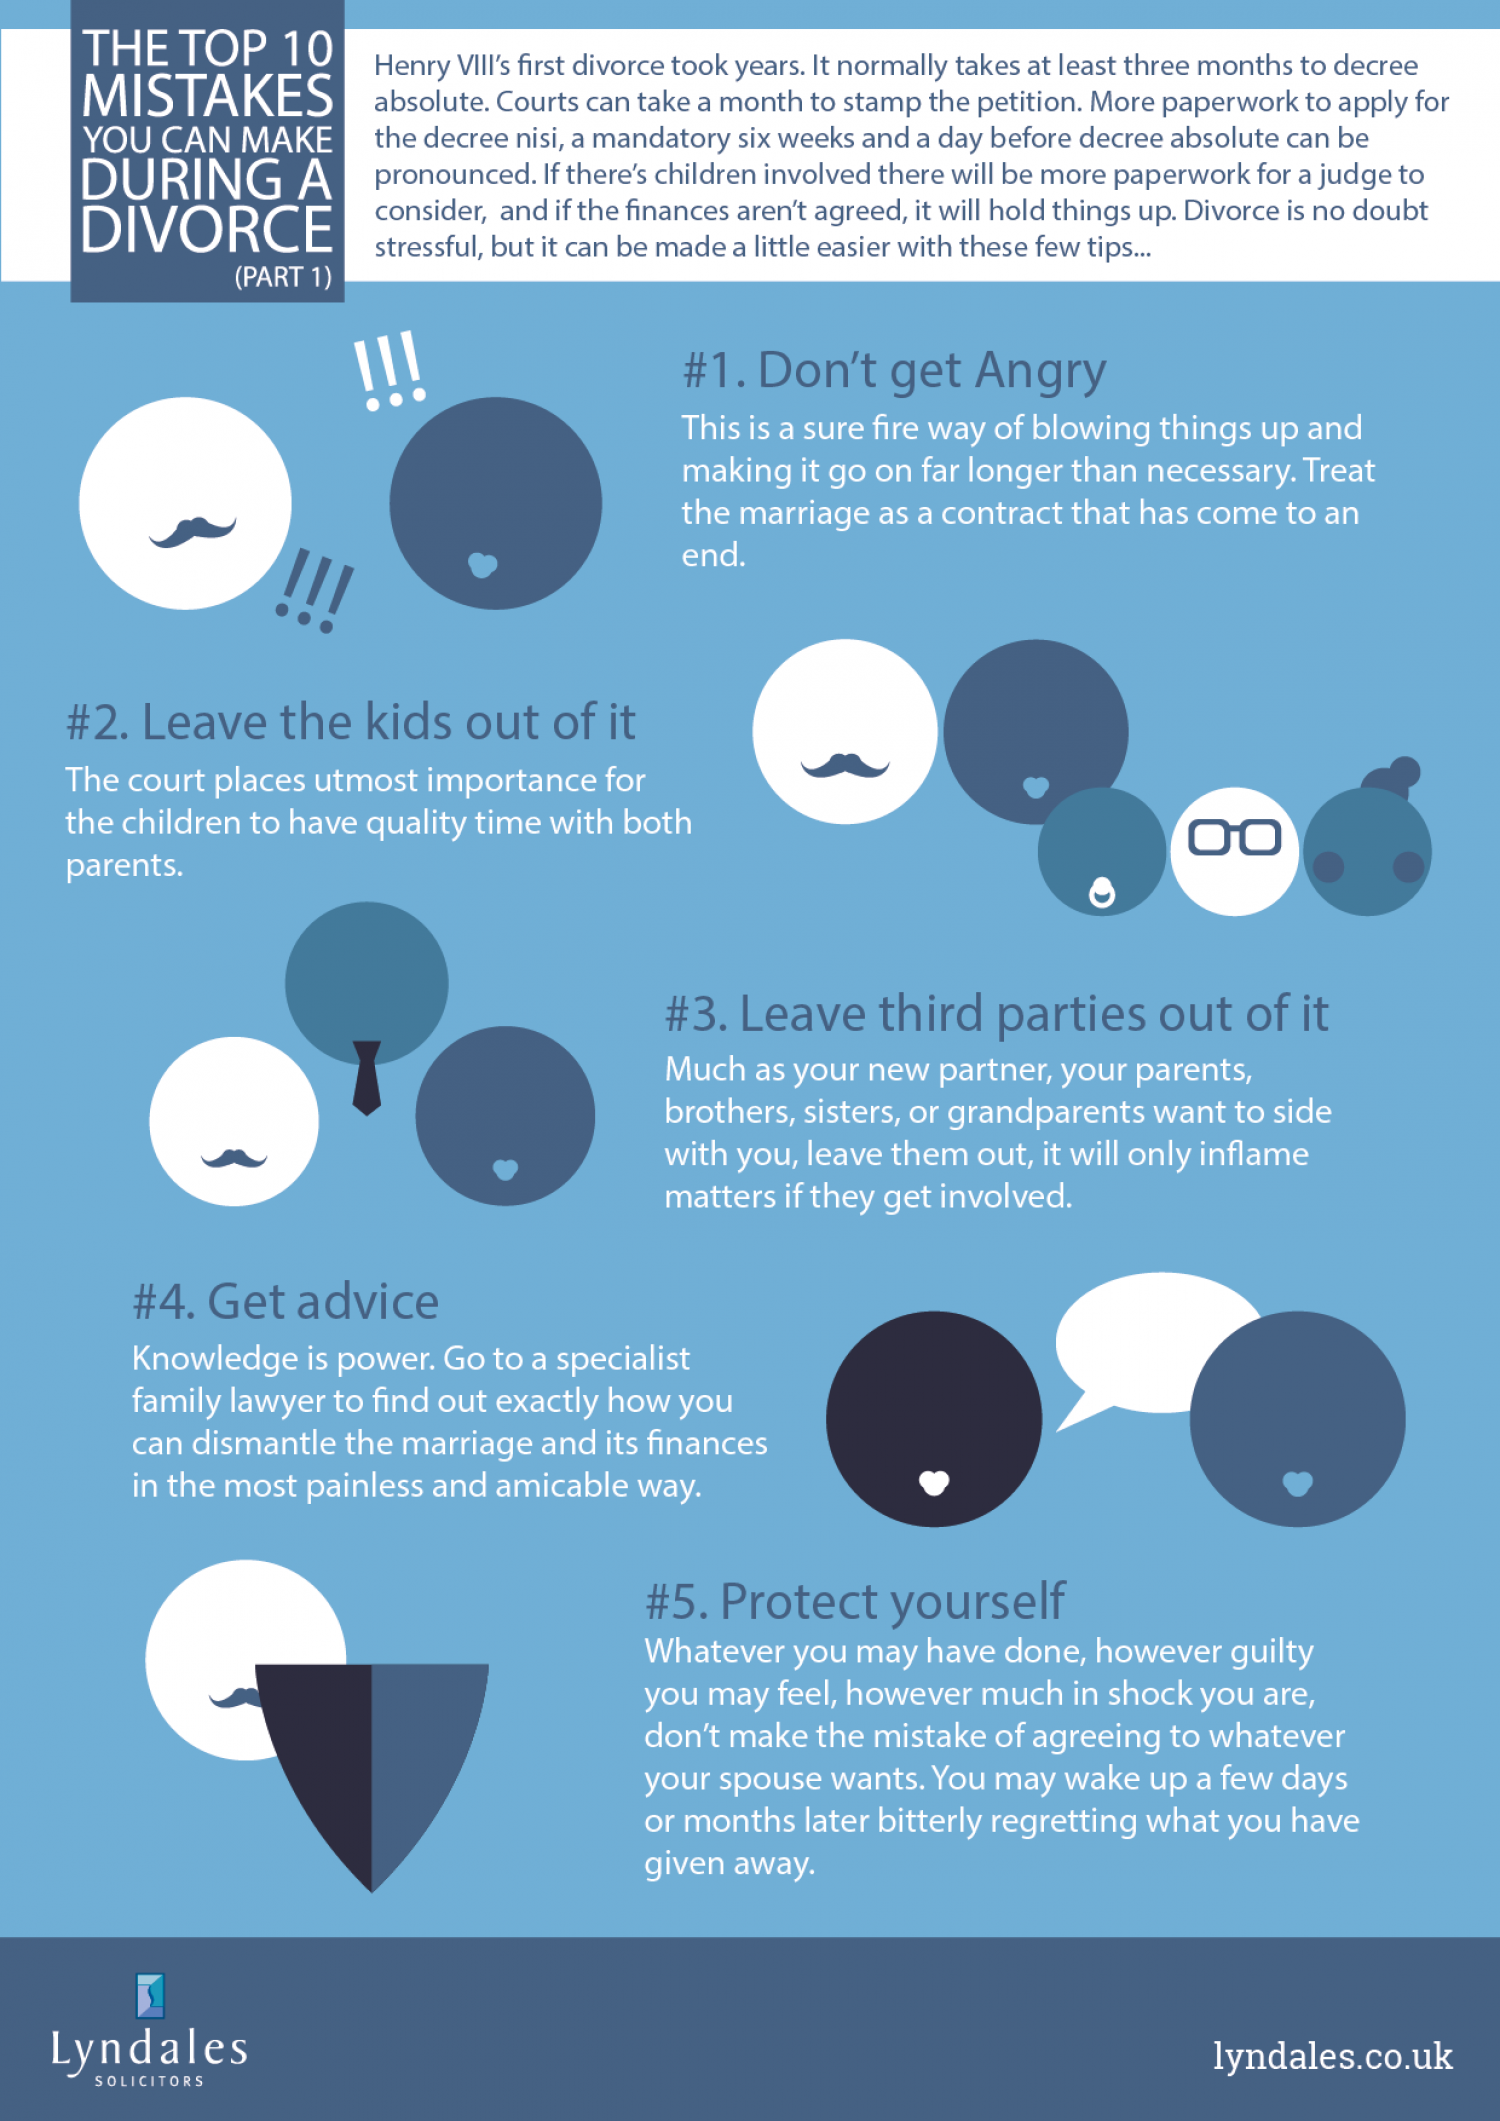 Mistakes you can make during a divorce part1 visual mistakes you can make during a divorce part1 infographic solutioingenieria Image collections